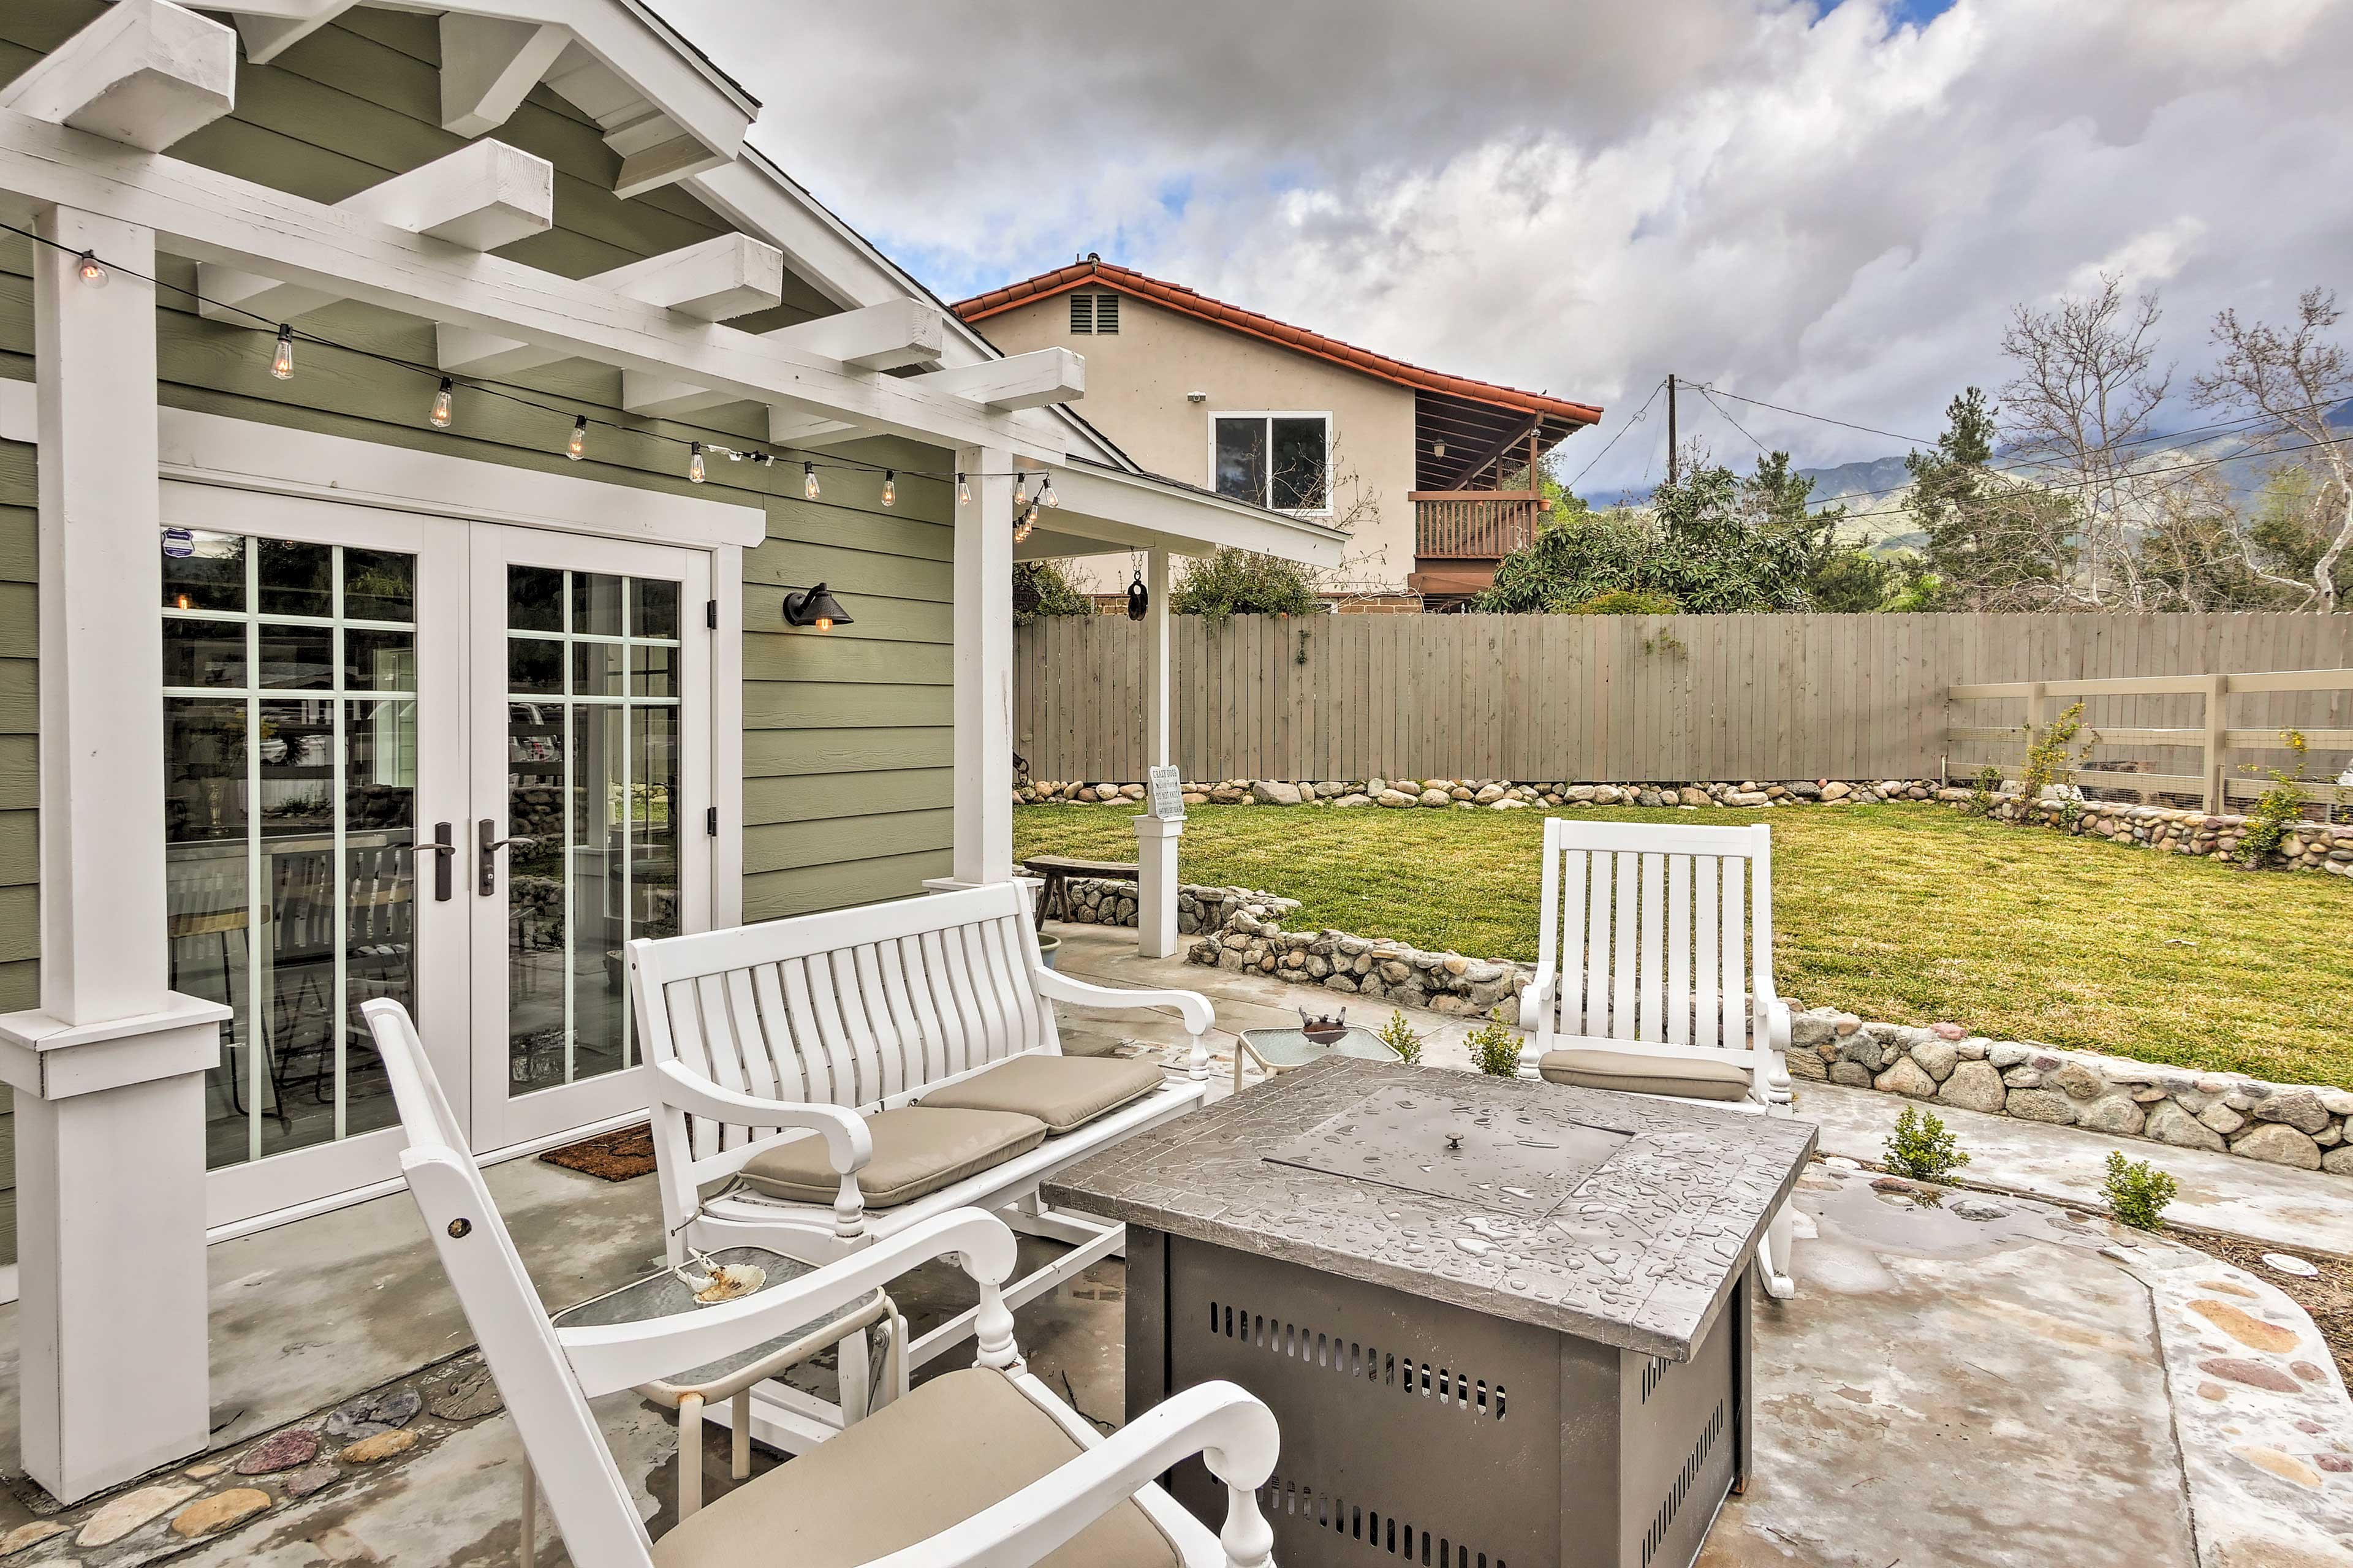 Book a romantic or adventure getaway for 2 at this charming cottage!